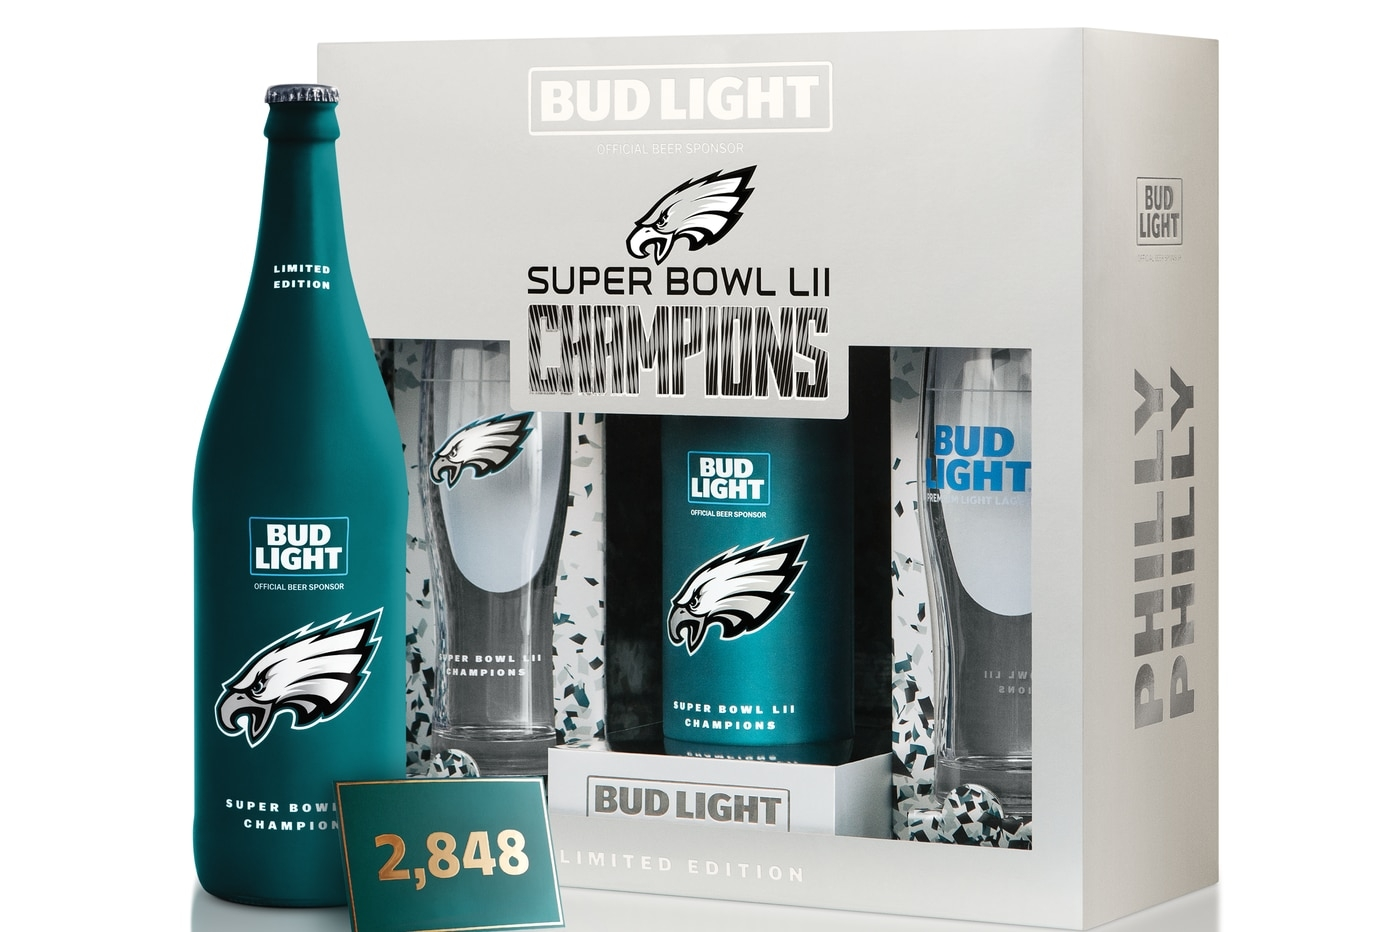 Bud Light Now Says 'philly Philly' Commemorative Packs Were intended for Bud Light Super Bowl